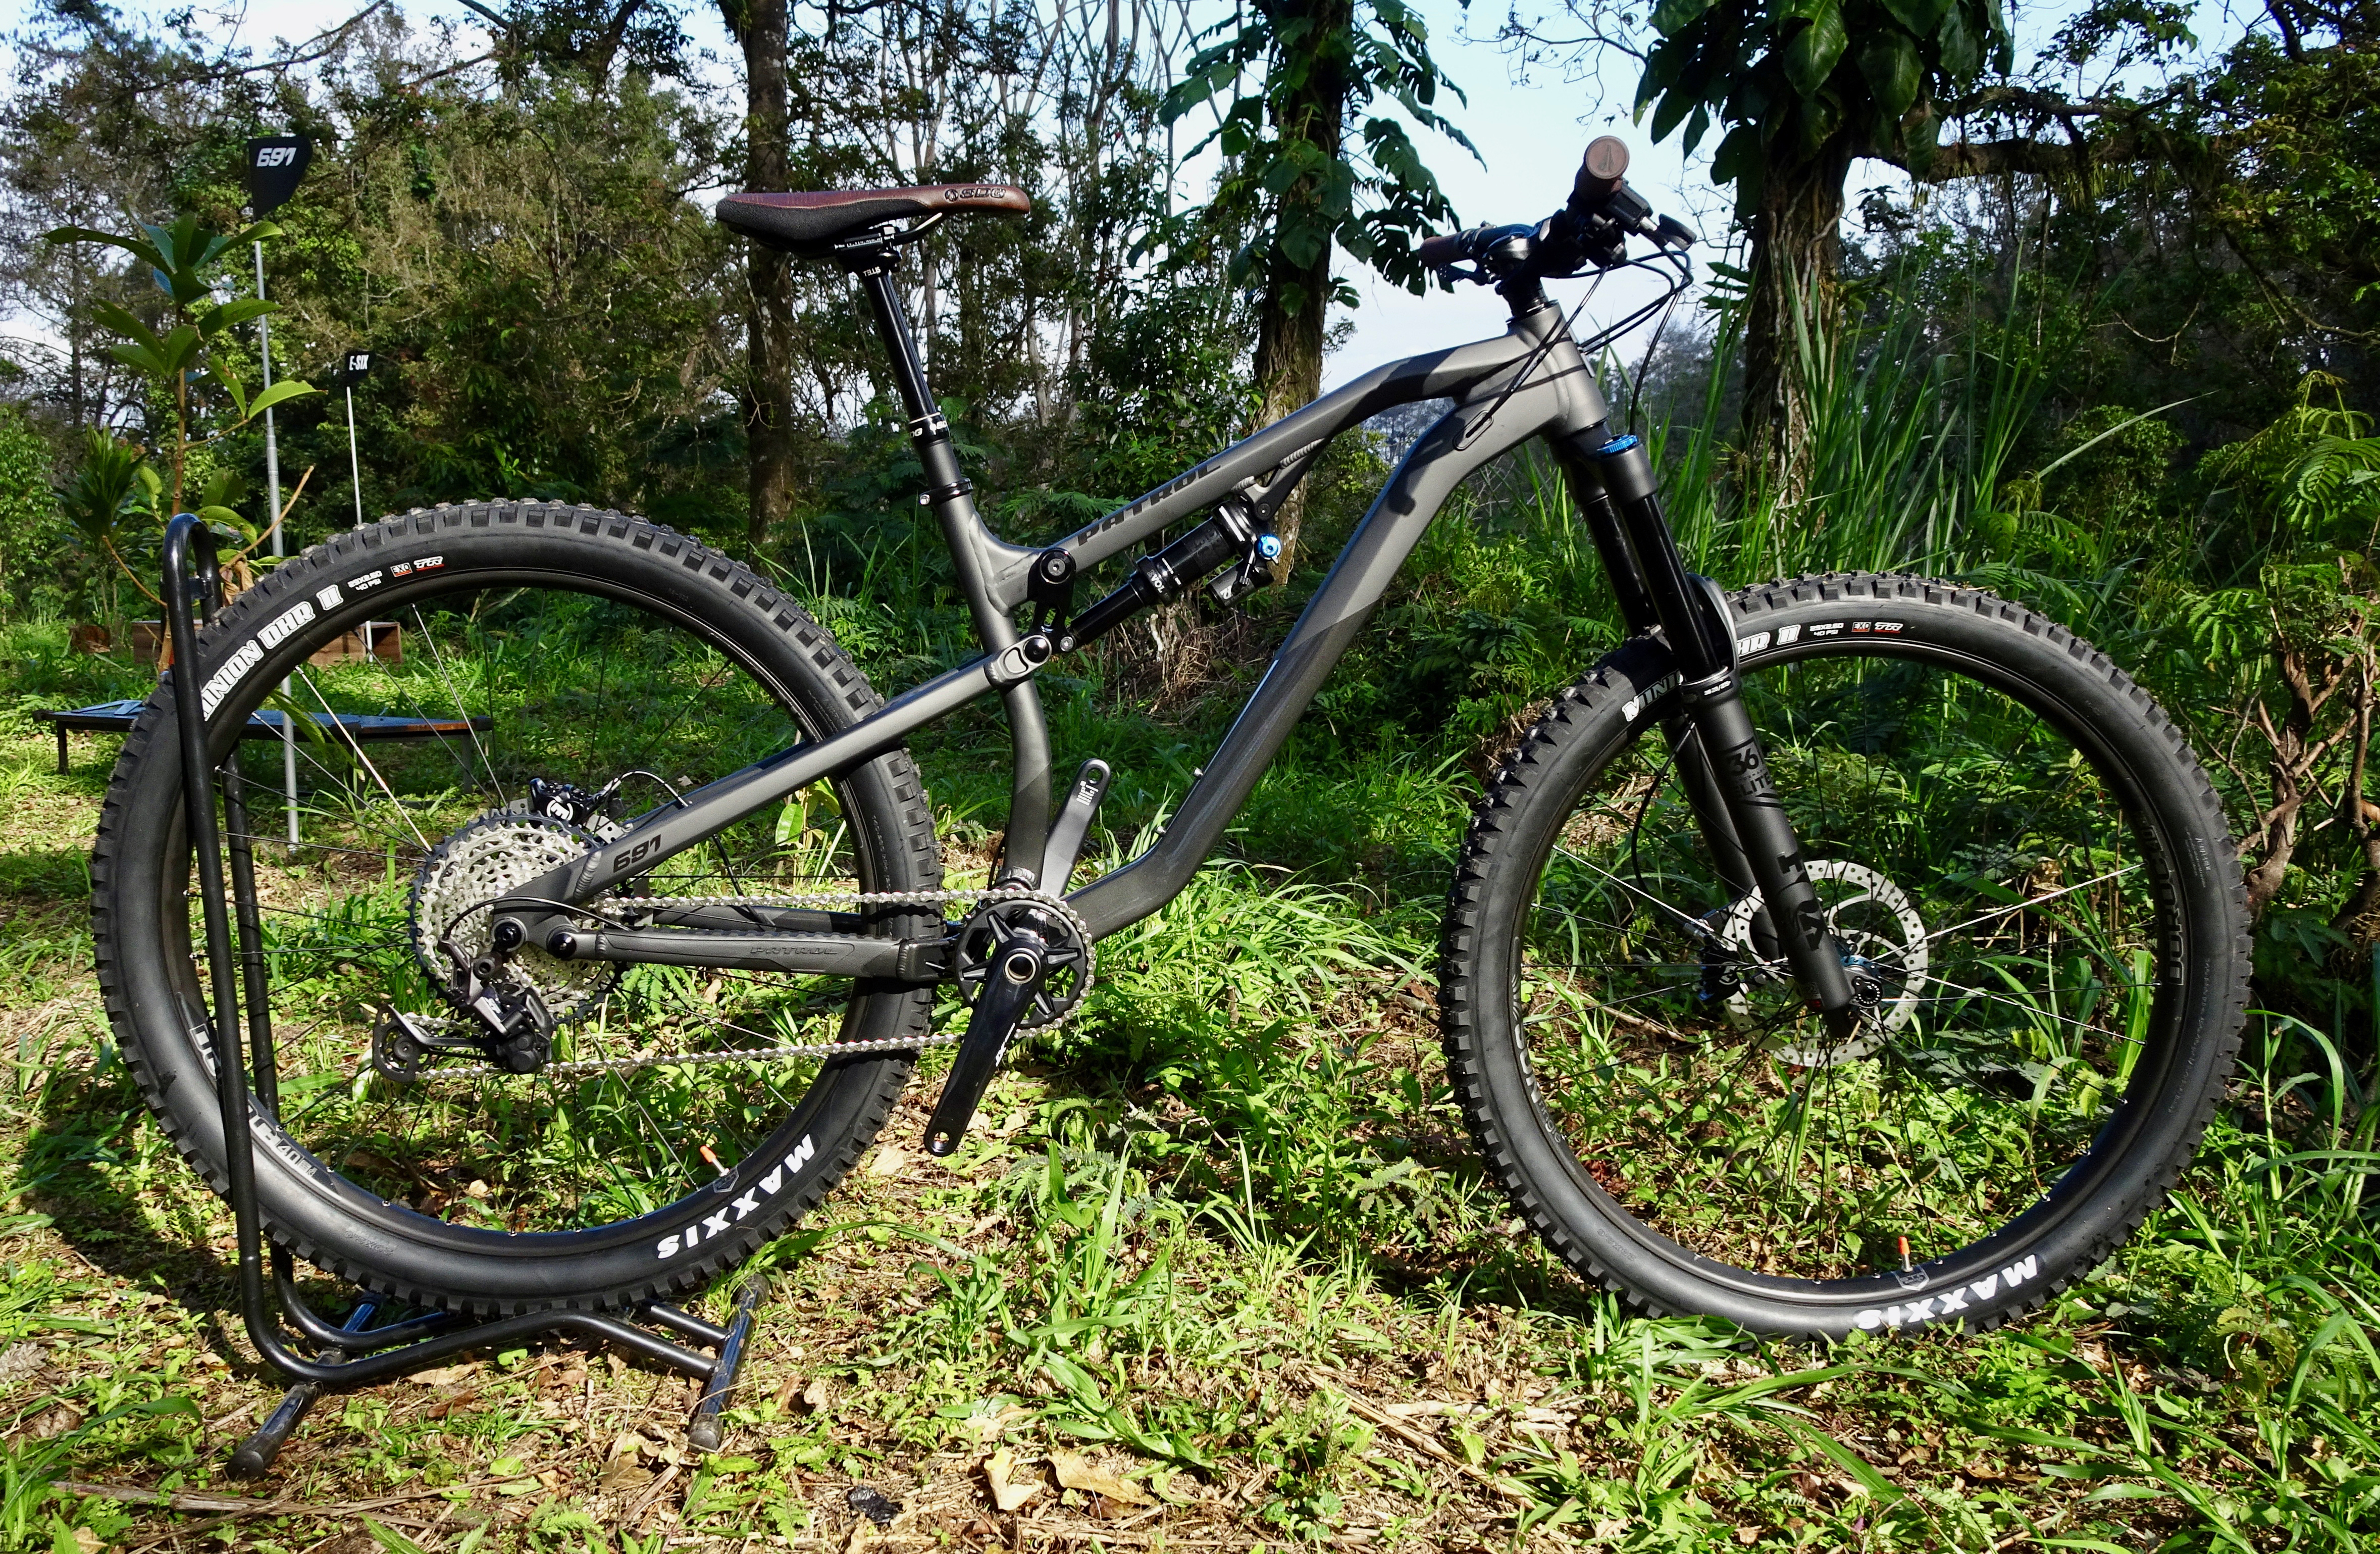 Patrol's New Long-Travel 29er, the 691, Shreds at a Competitive Price [First Ride Review] - Singletracks Mountain Bike News